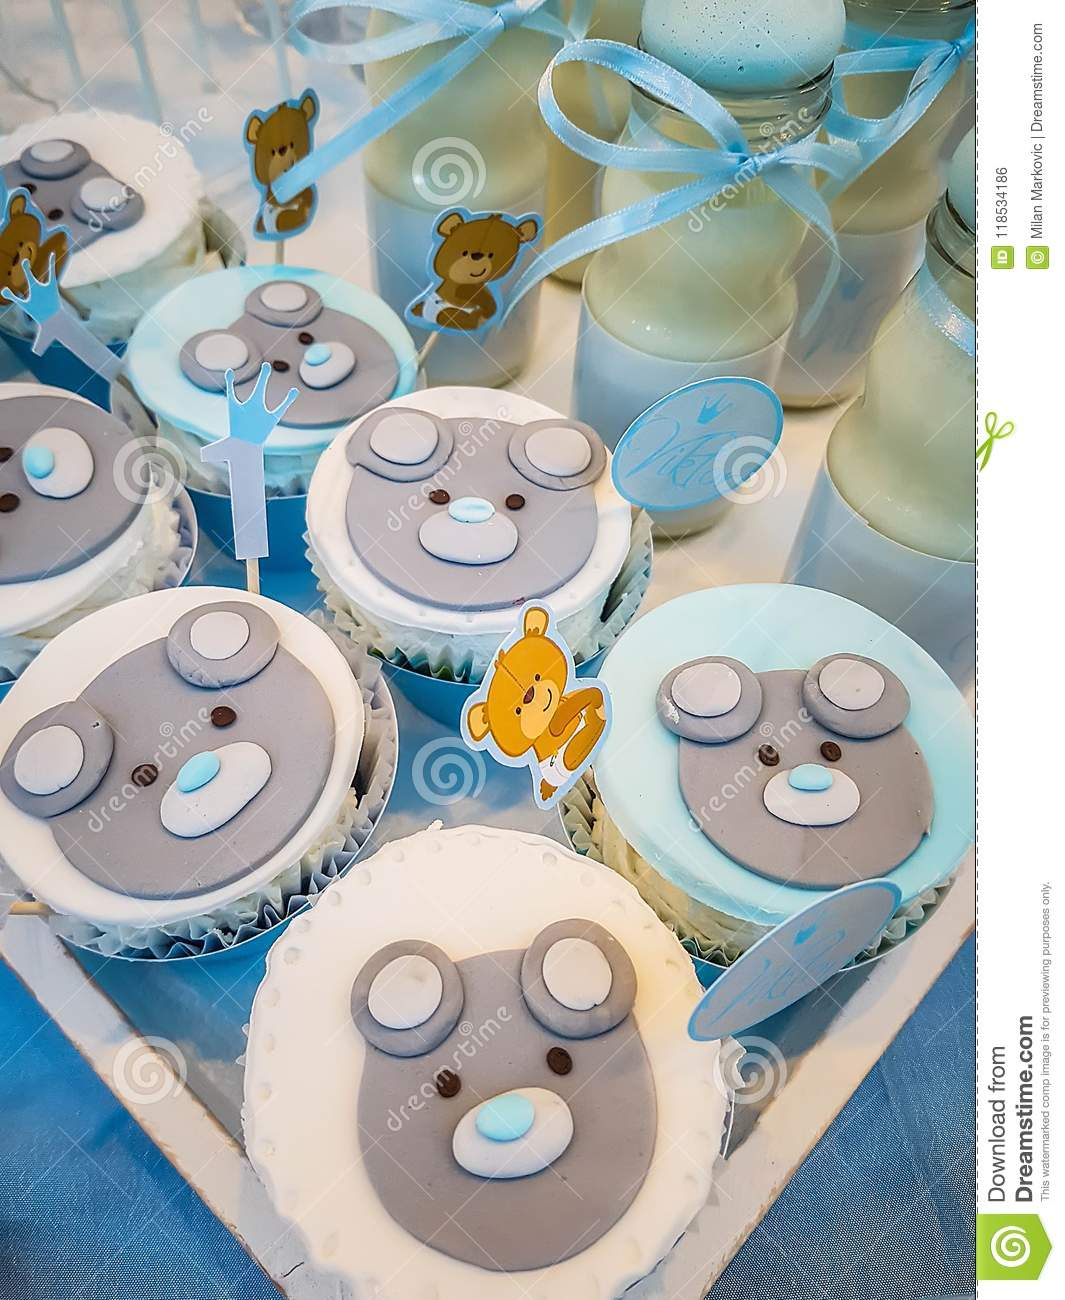 The boy`s birthday, blue, Birthday Boy Blue Party with Candy Presents and Cupcakes